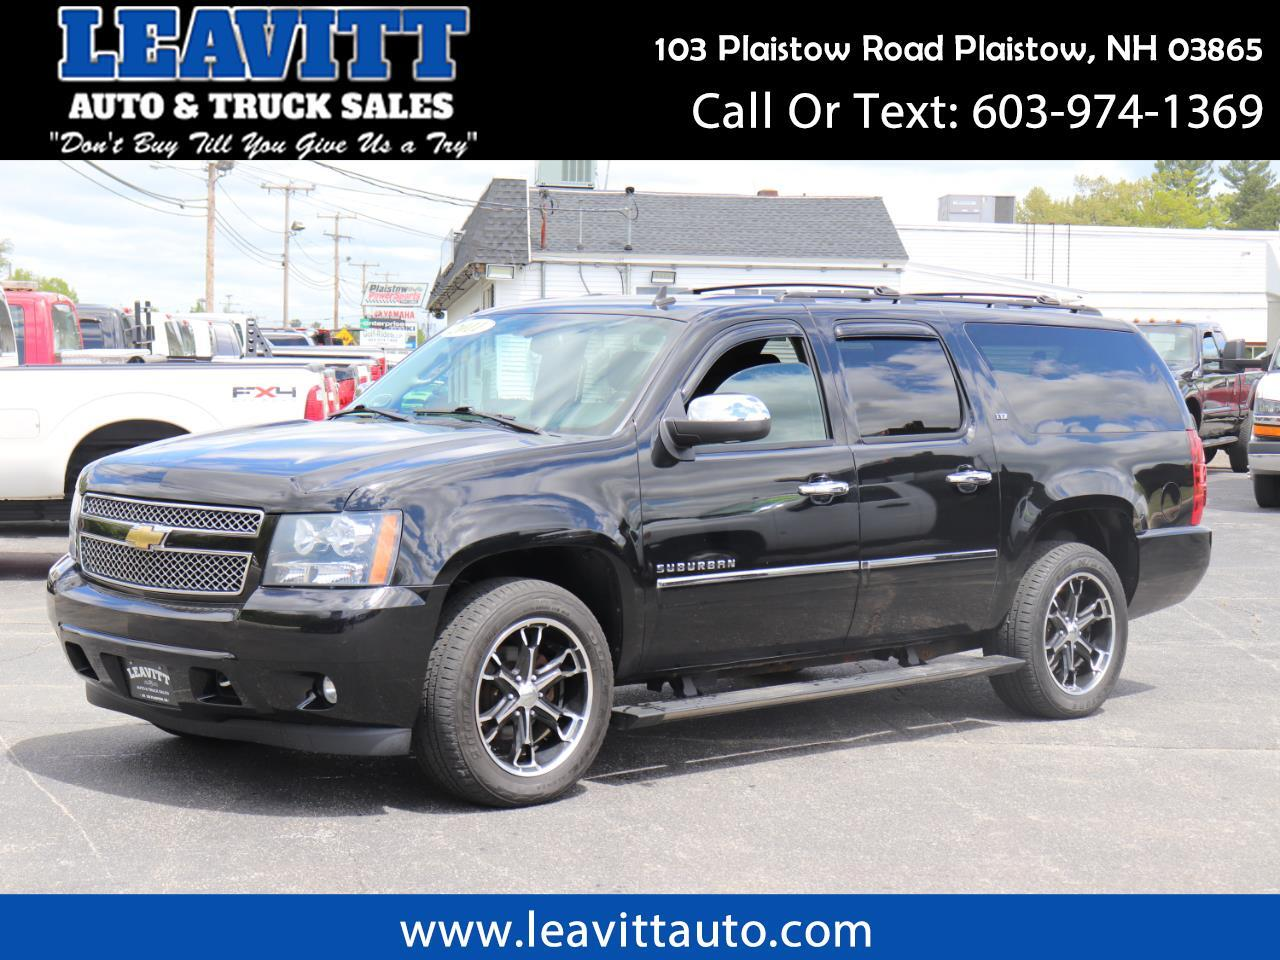 2011 Chevrolet Suburban LTZ BLACK ON BLACK LOADED!!